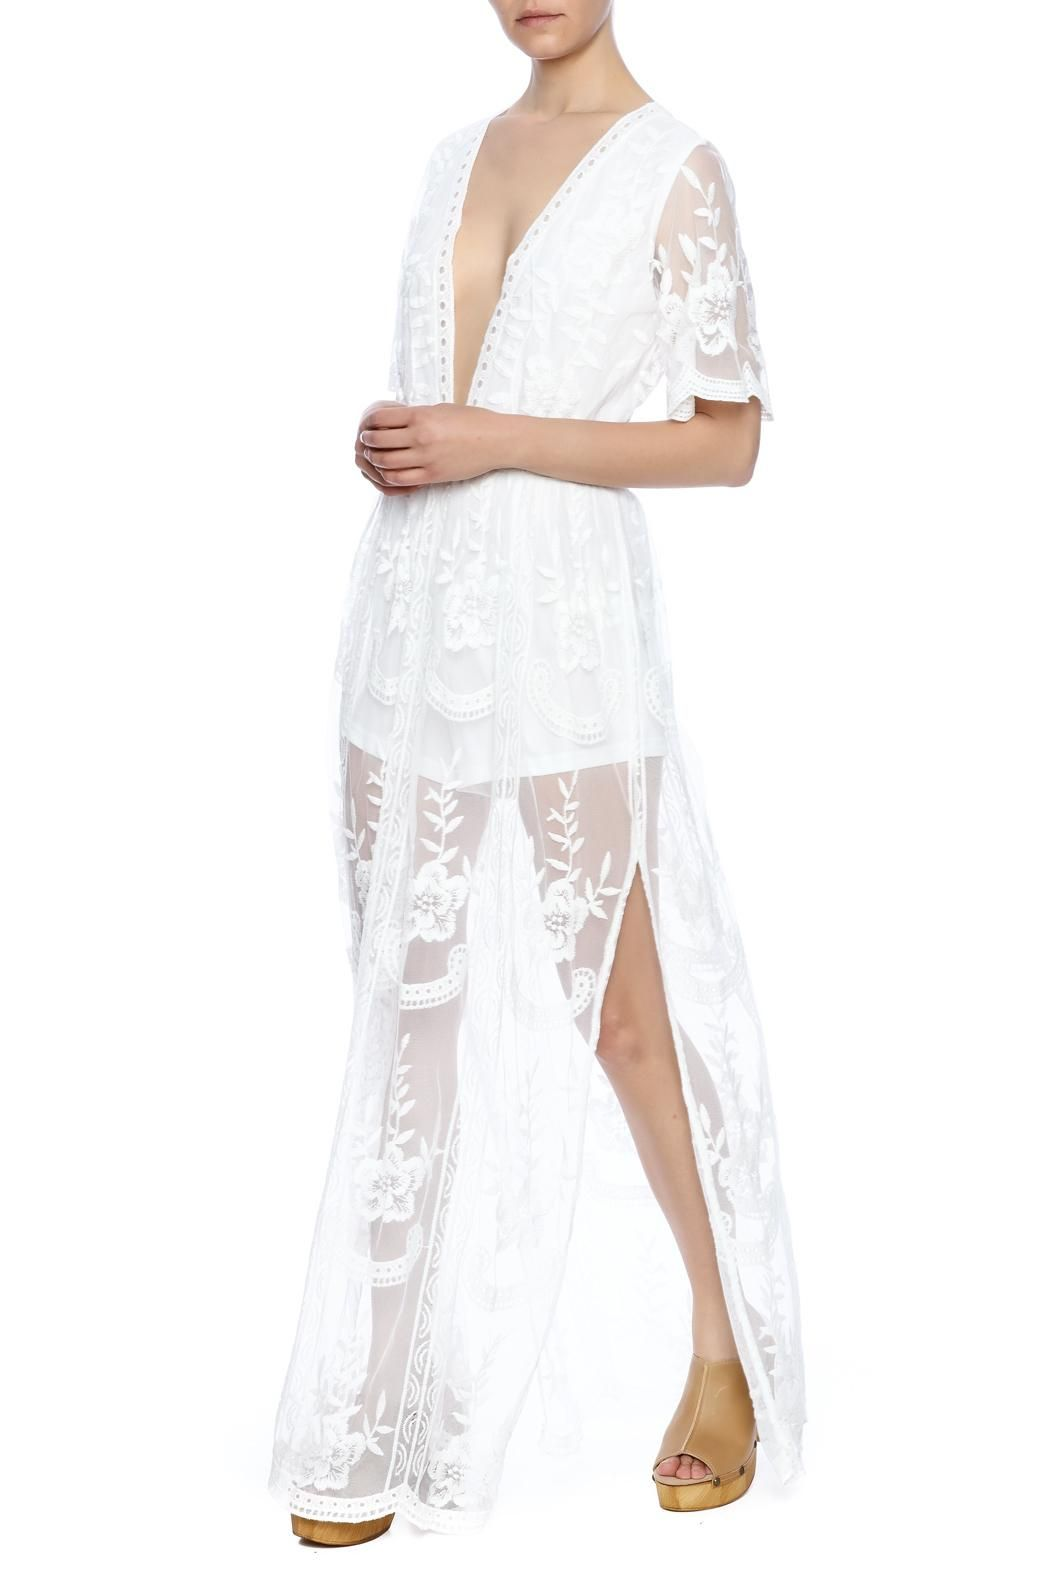 d1b337cf749 Romper with lace   crochet maxi overlay. Plunging neckline and zip back  closure. Double